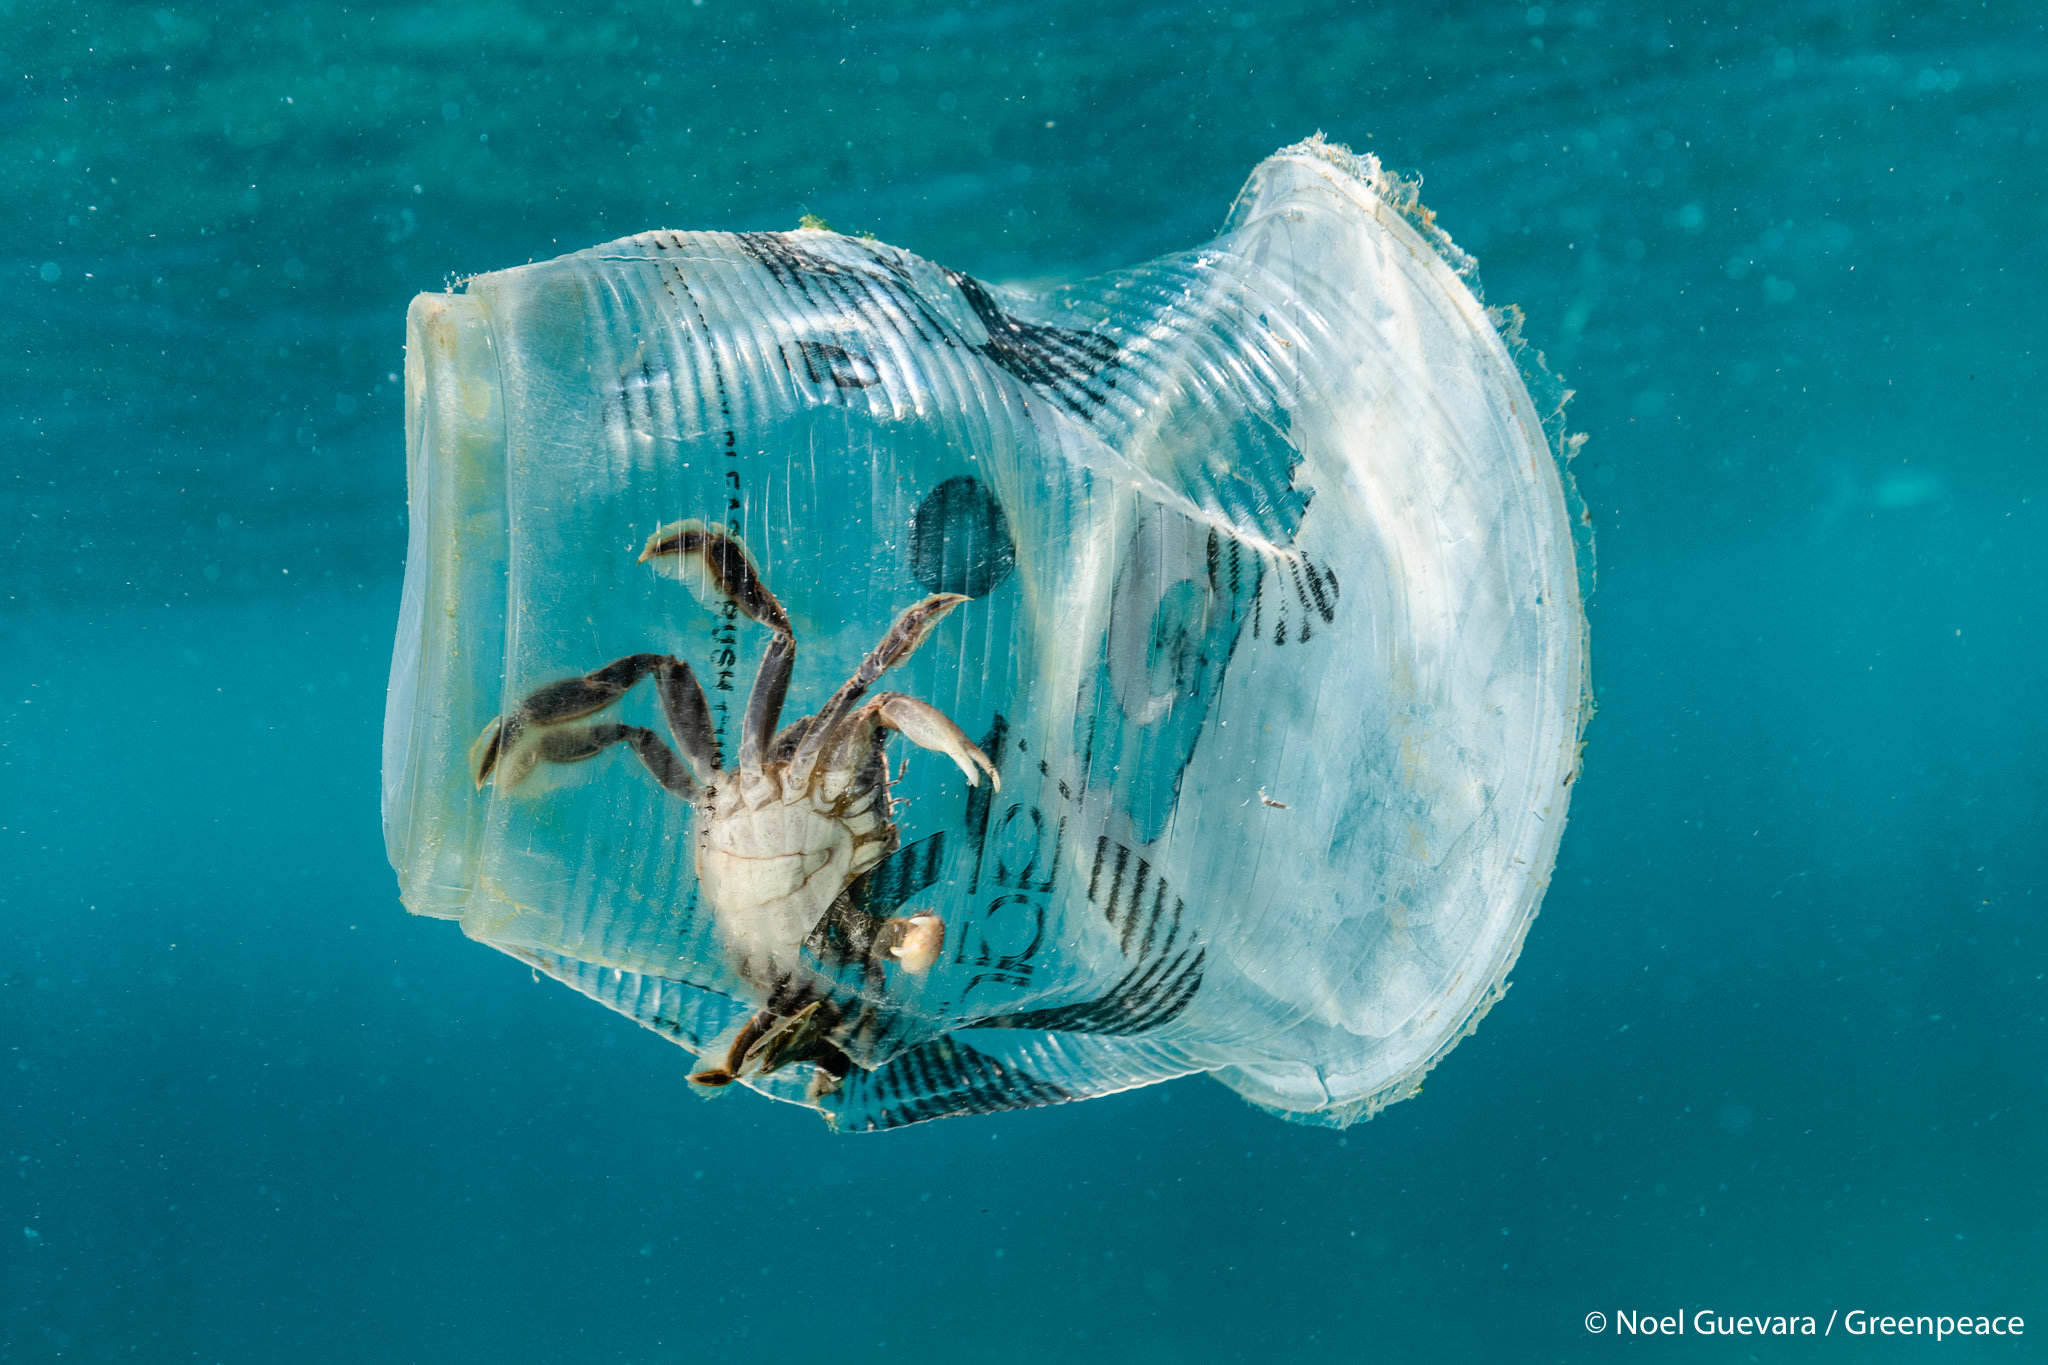 SNAGGED. A crab floats inside a plastic cup near the surface of the waters of Caban Cove, Batangas, along Verde Island Passage on March 7, 2019. Photo courtesy of Noel Guevara